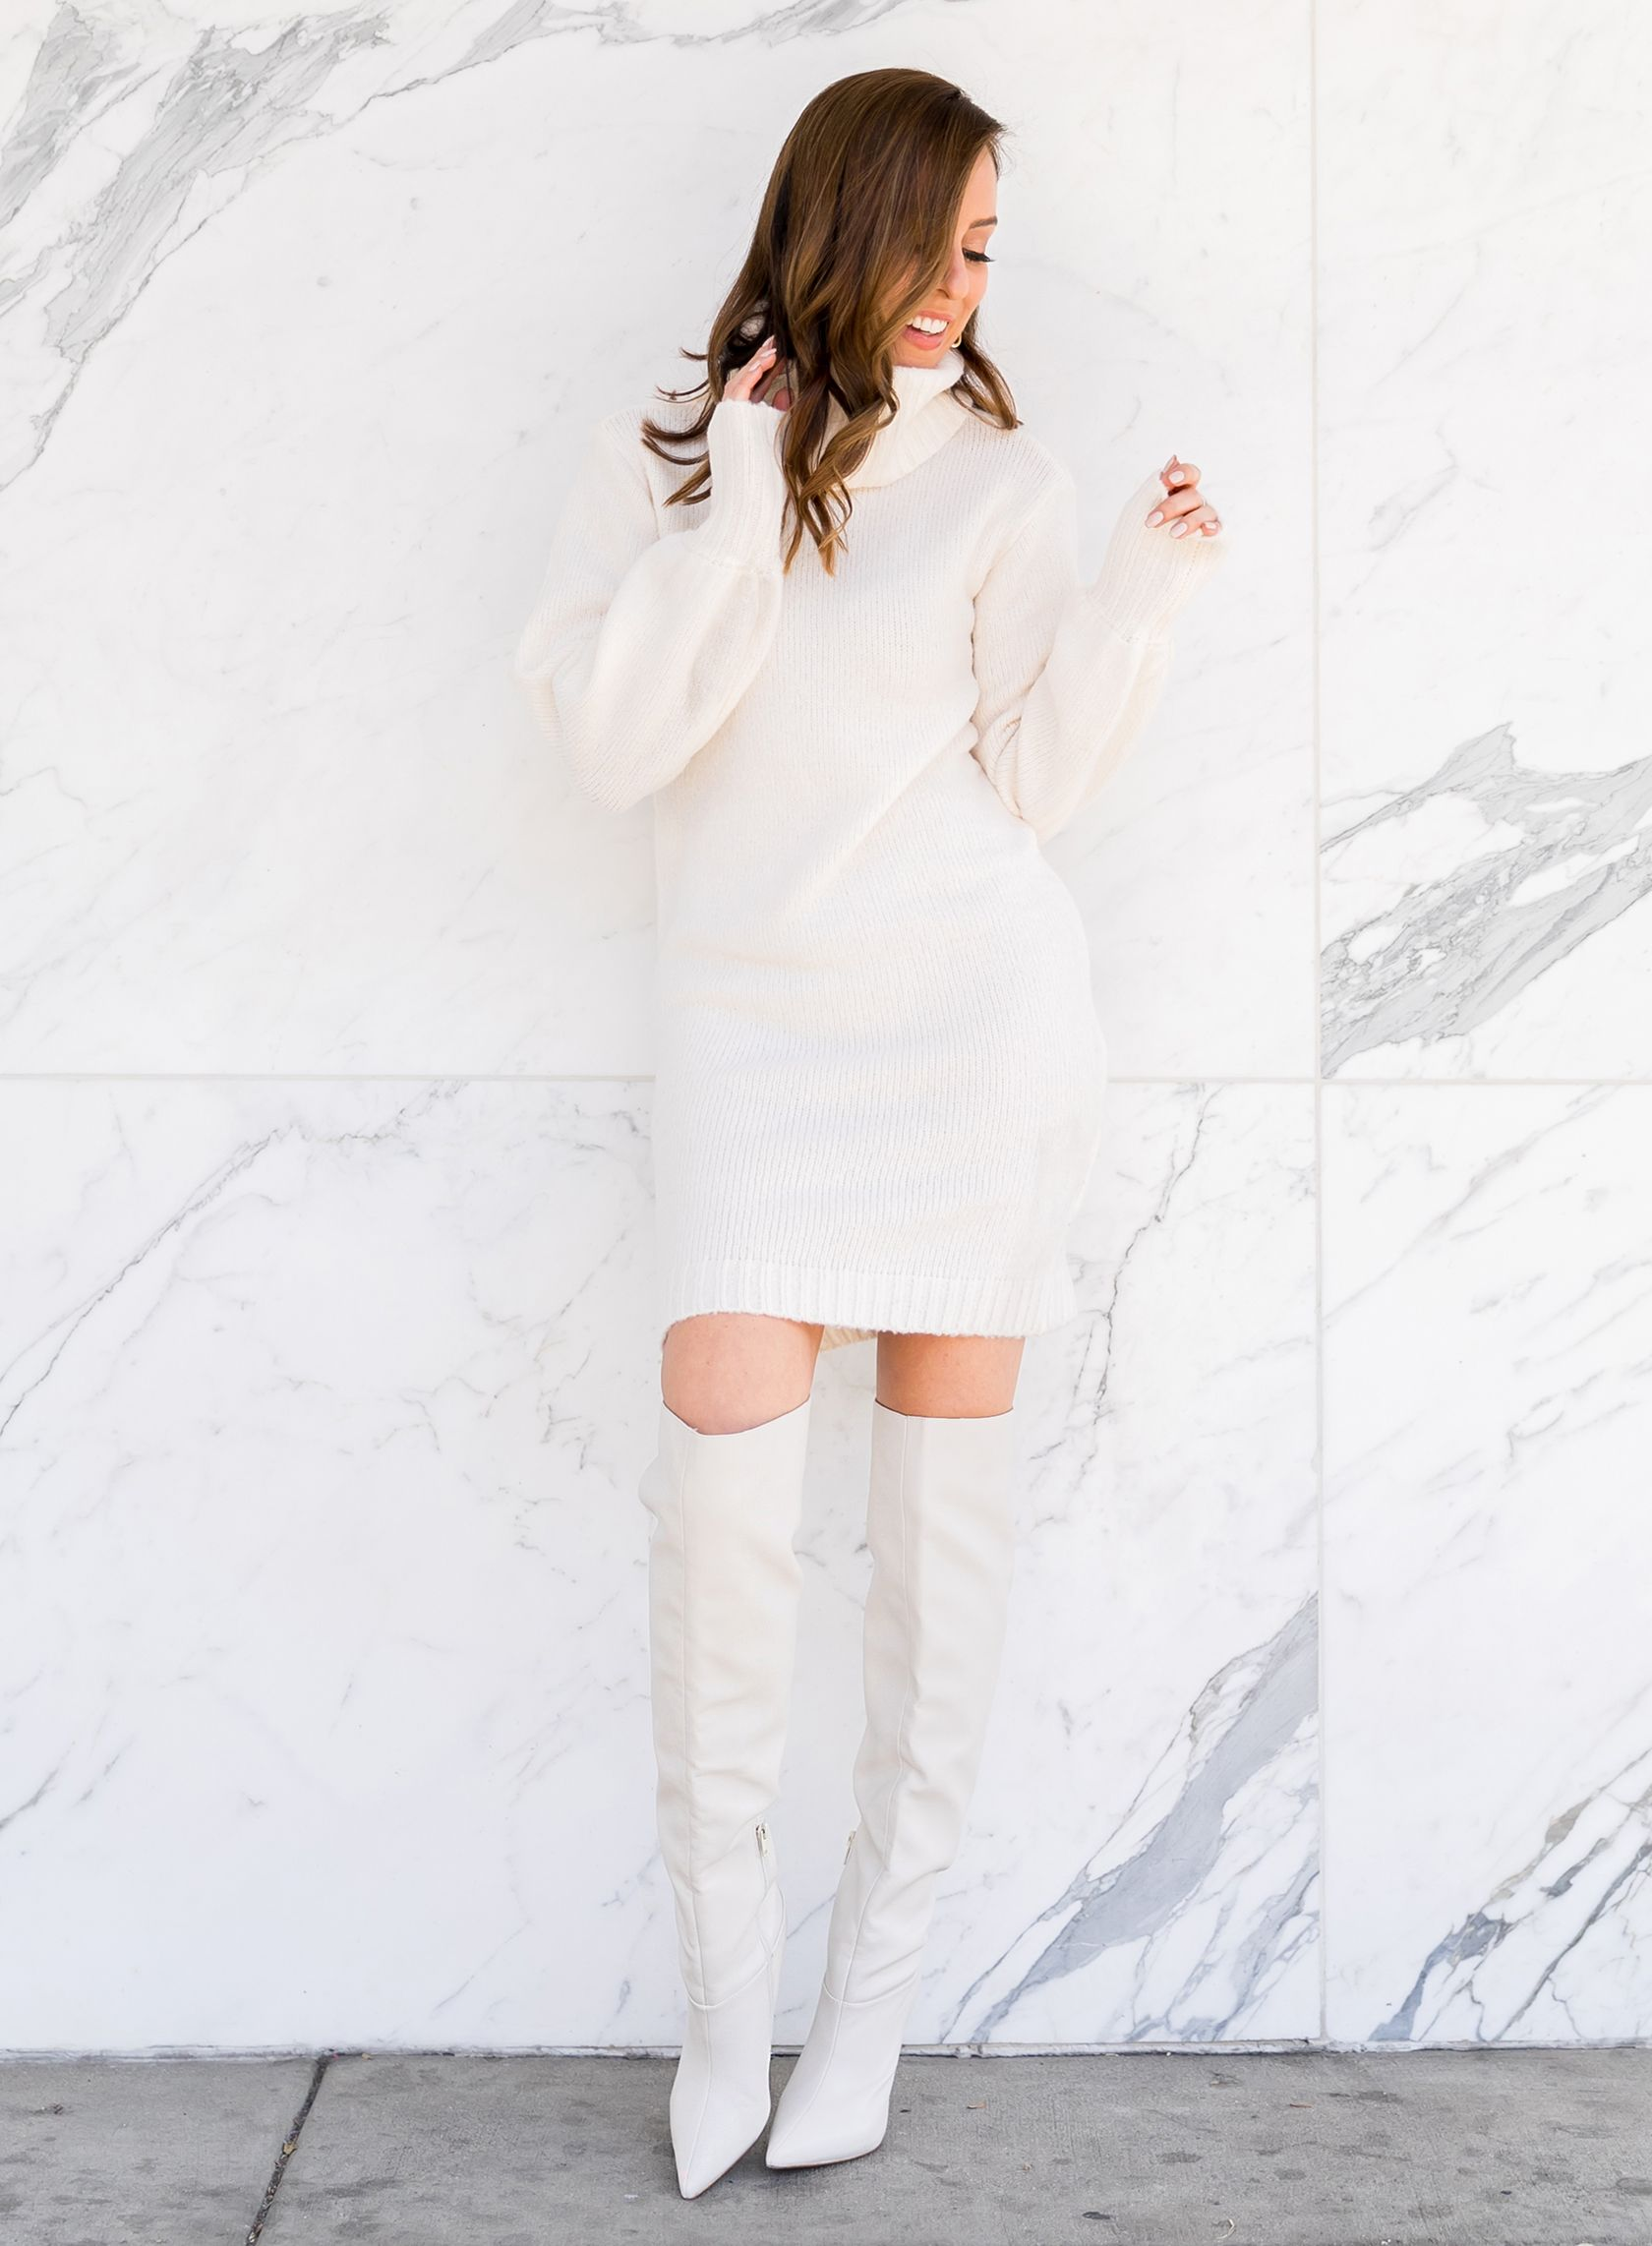 722cbb20e25 Sydne Style wears guess sweater dress for winter outfit ideas  winterwhite   otkboots  boots  white  marble  sweaterdress  sydnesummer